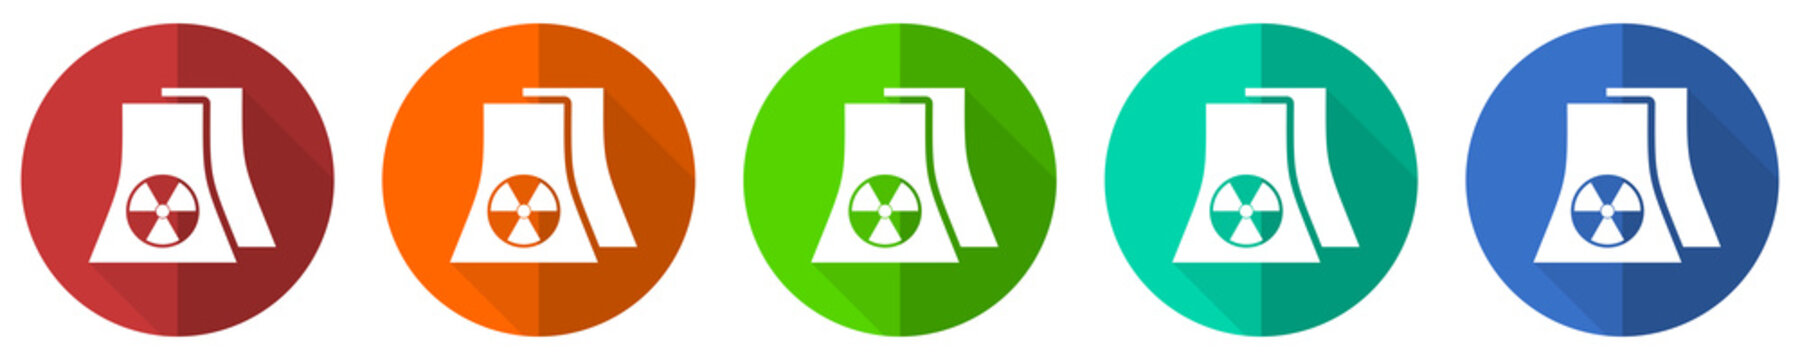 Nuclear power plant icon set, red, blue, green and orange flat design web buttons isolated on white background, vector illustration